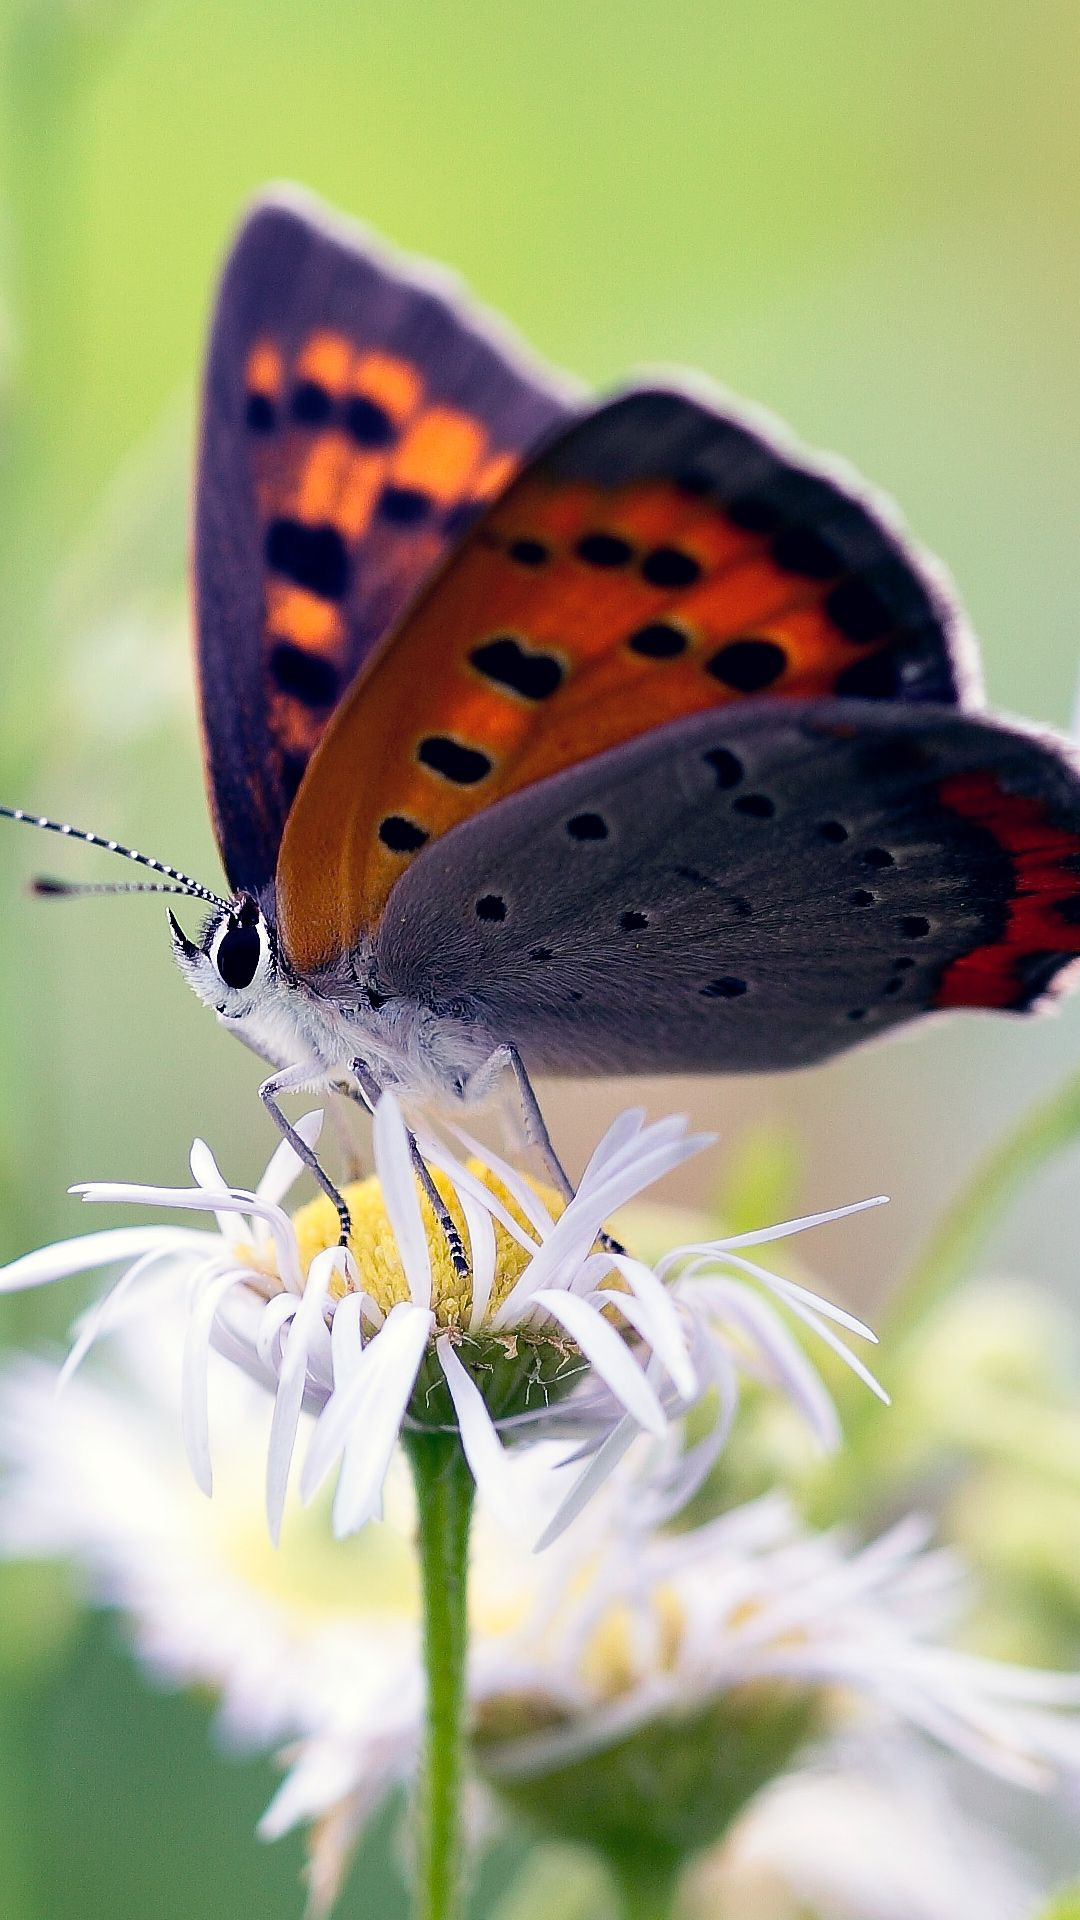 Amazing Butterfly On Flower Free Nature Hd Wallpaper Desktop Background Images Butterfly Wallpaper Butterfly Images